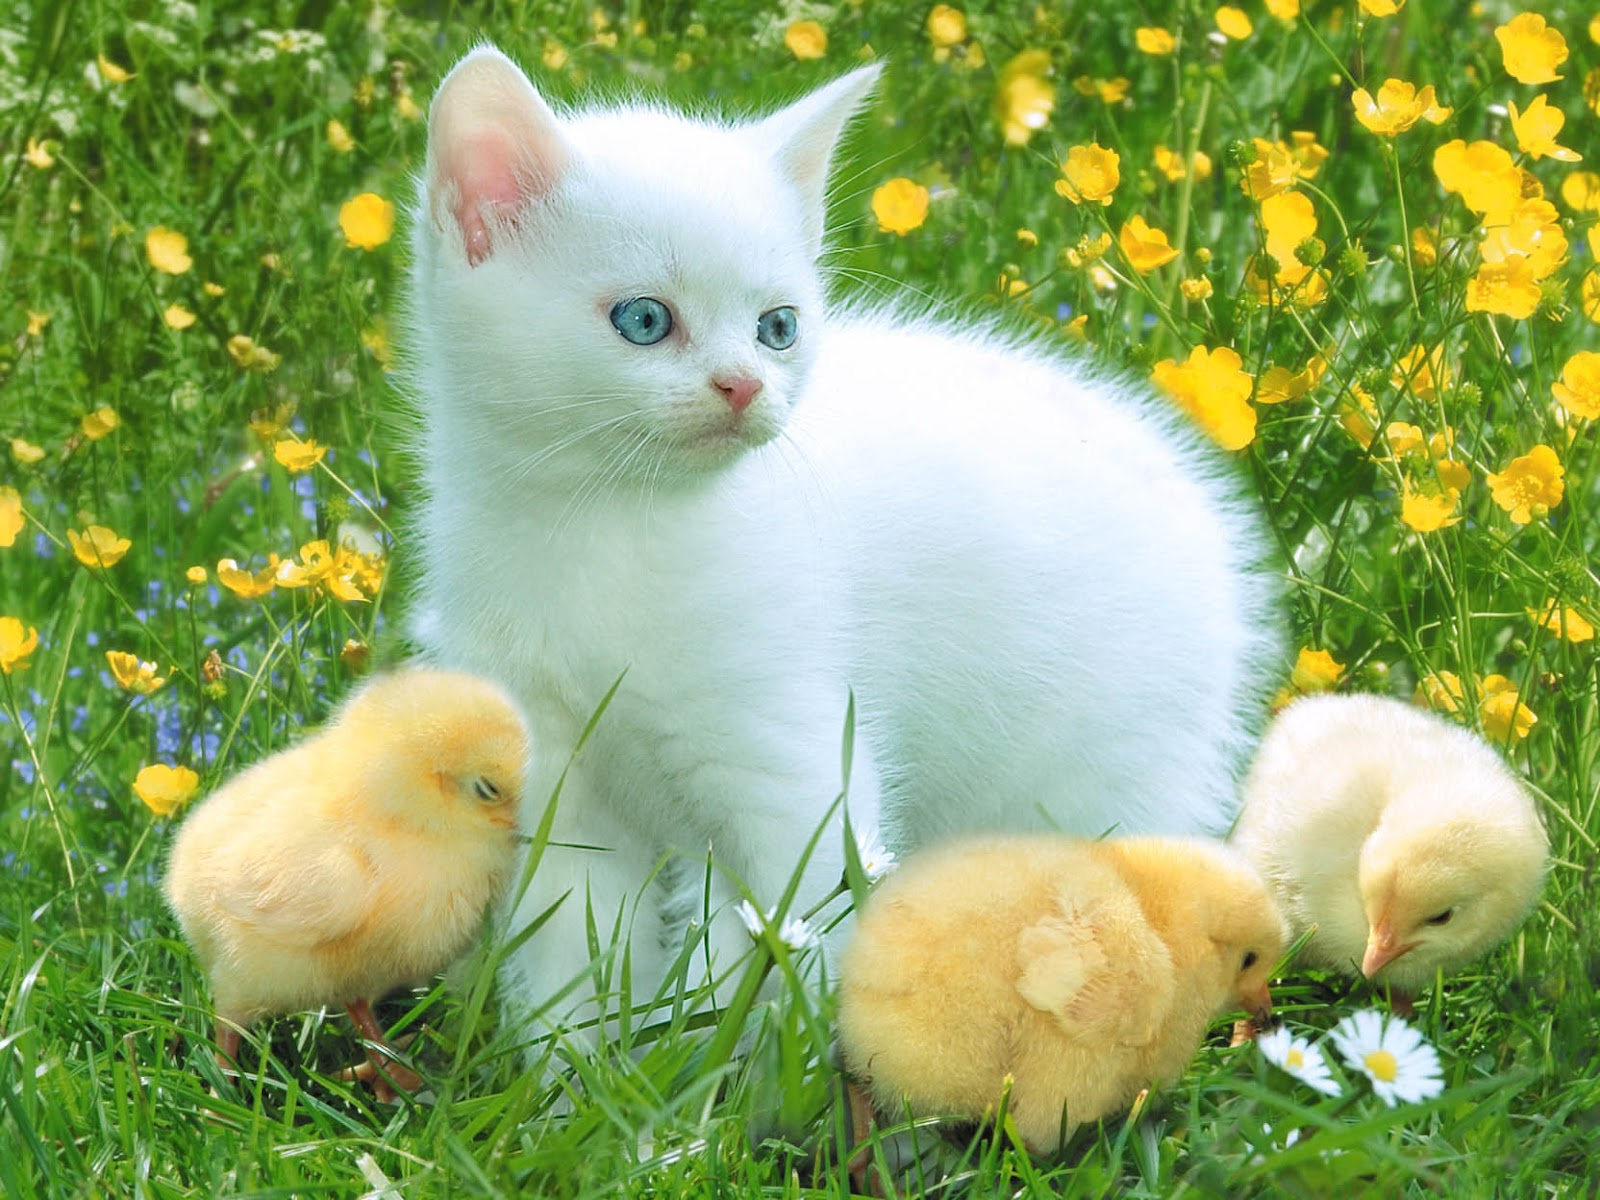 easter monday and i want to share some awesome easter cat wallpapers 1600x1200